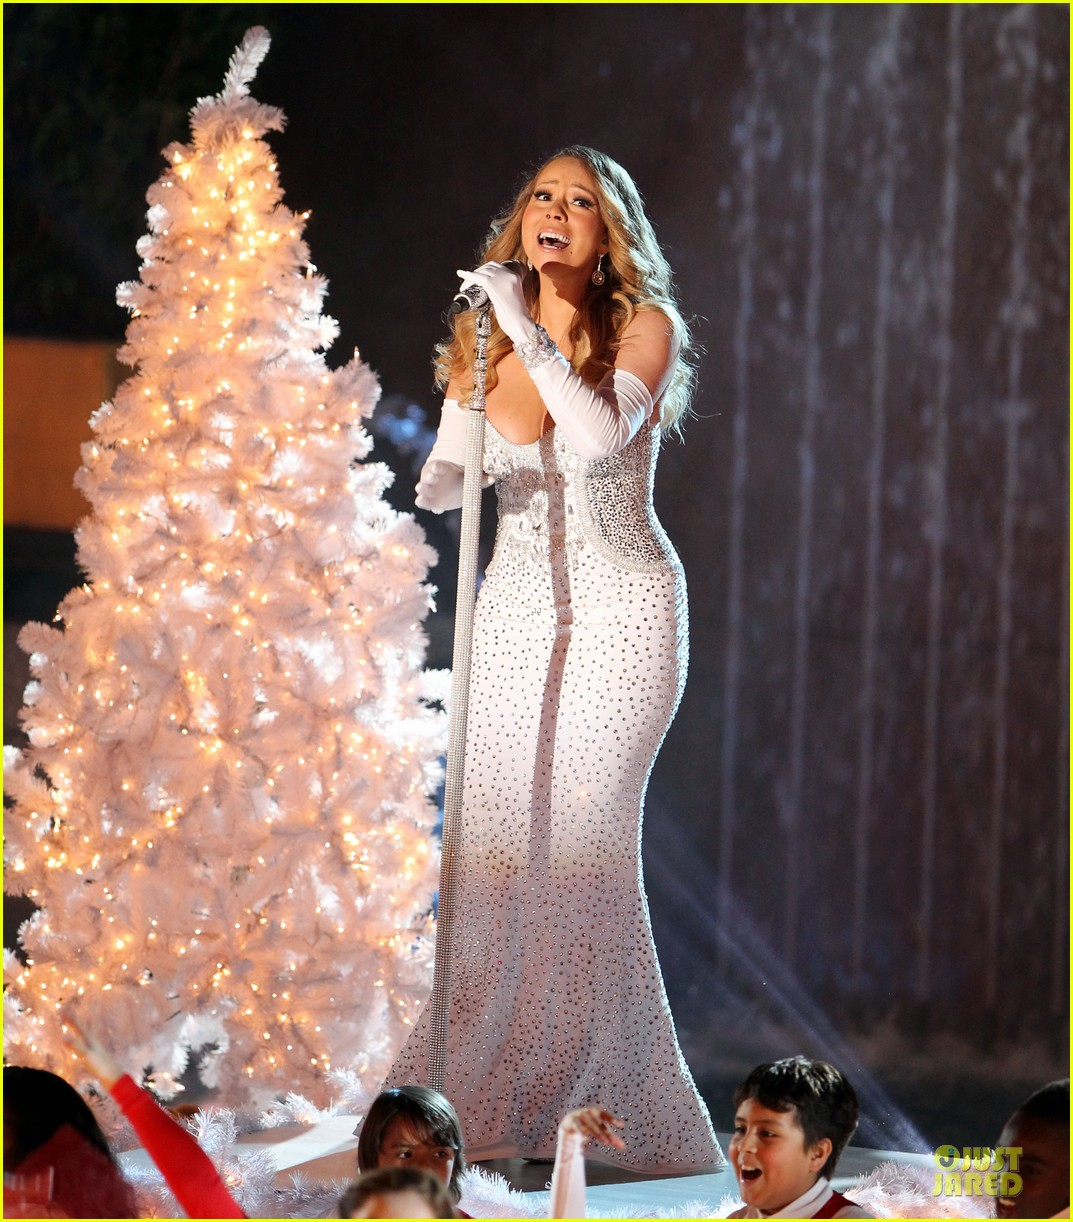 mariah carey rockfeller center christmas tree lighting 2013 performer 103004633